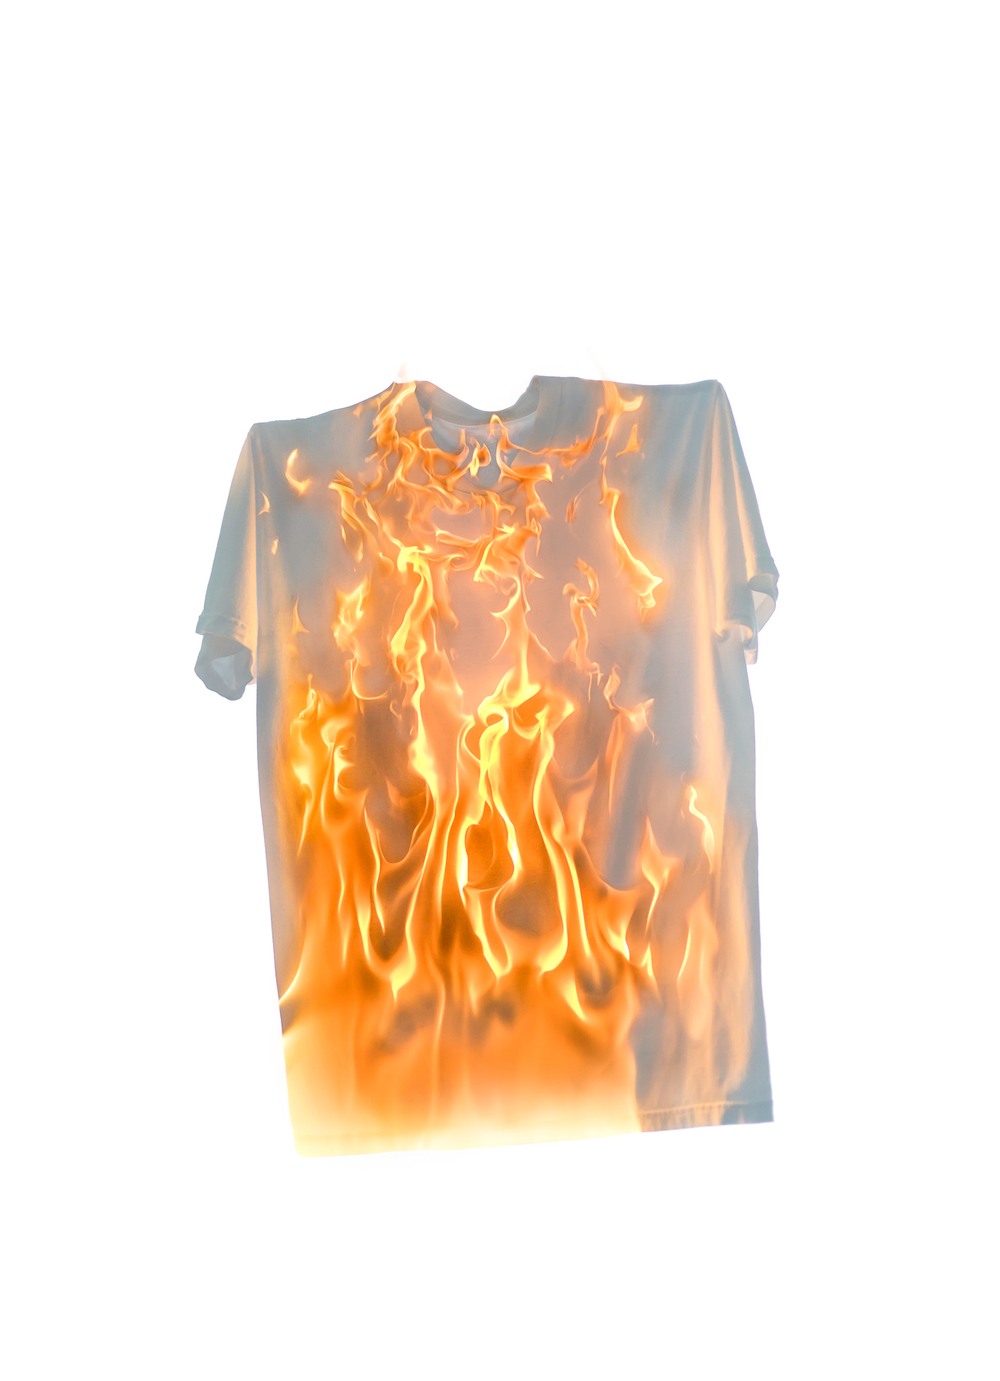 burning_garments-001.jpg